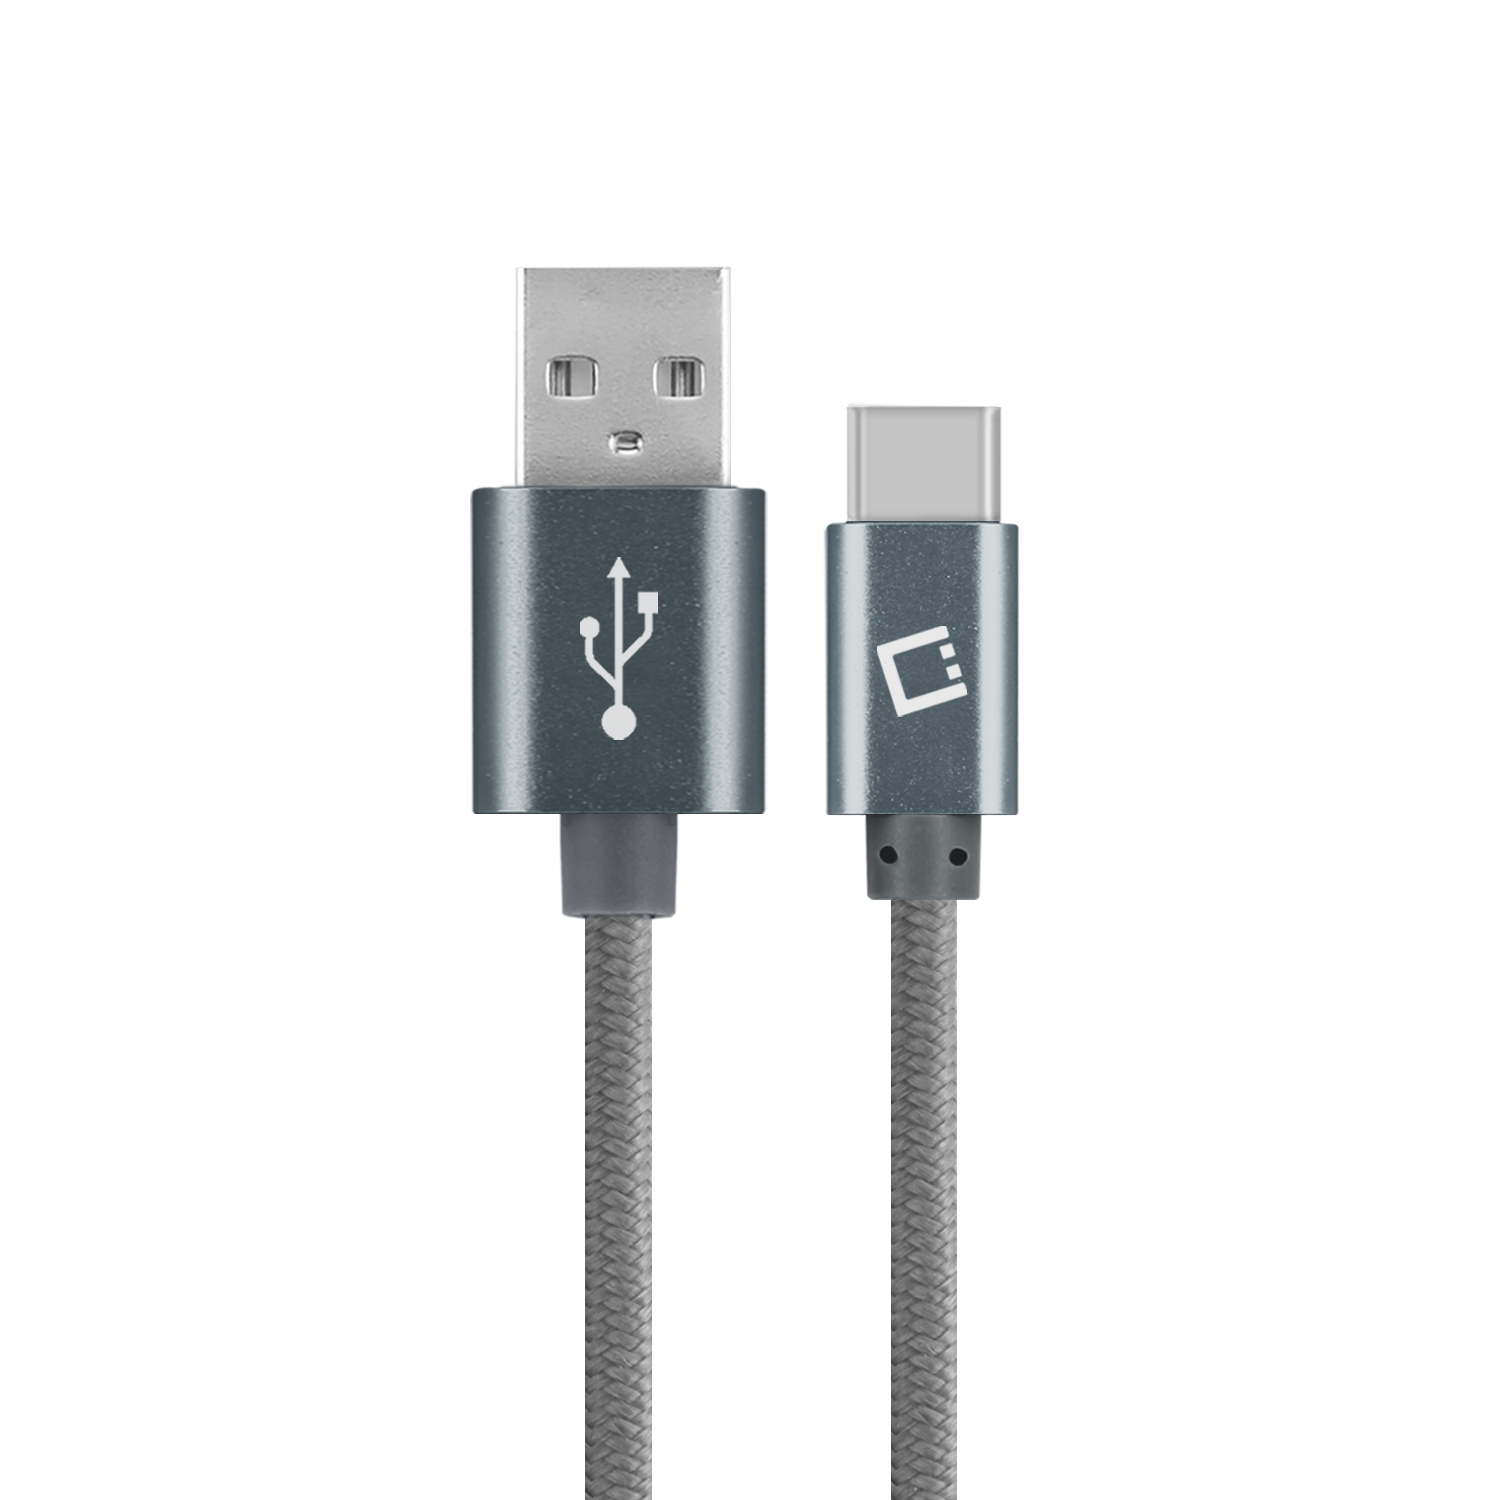 Samsung Galaxy S10 Plus USB Type-C To Type-A Braided Data Power Cable Grey 4ft Braided